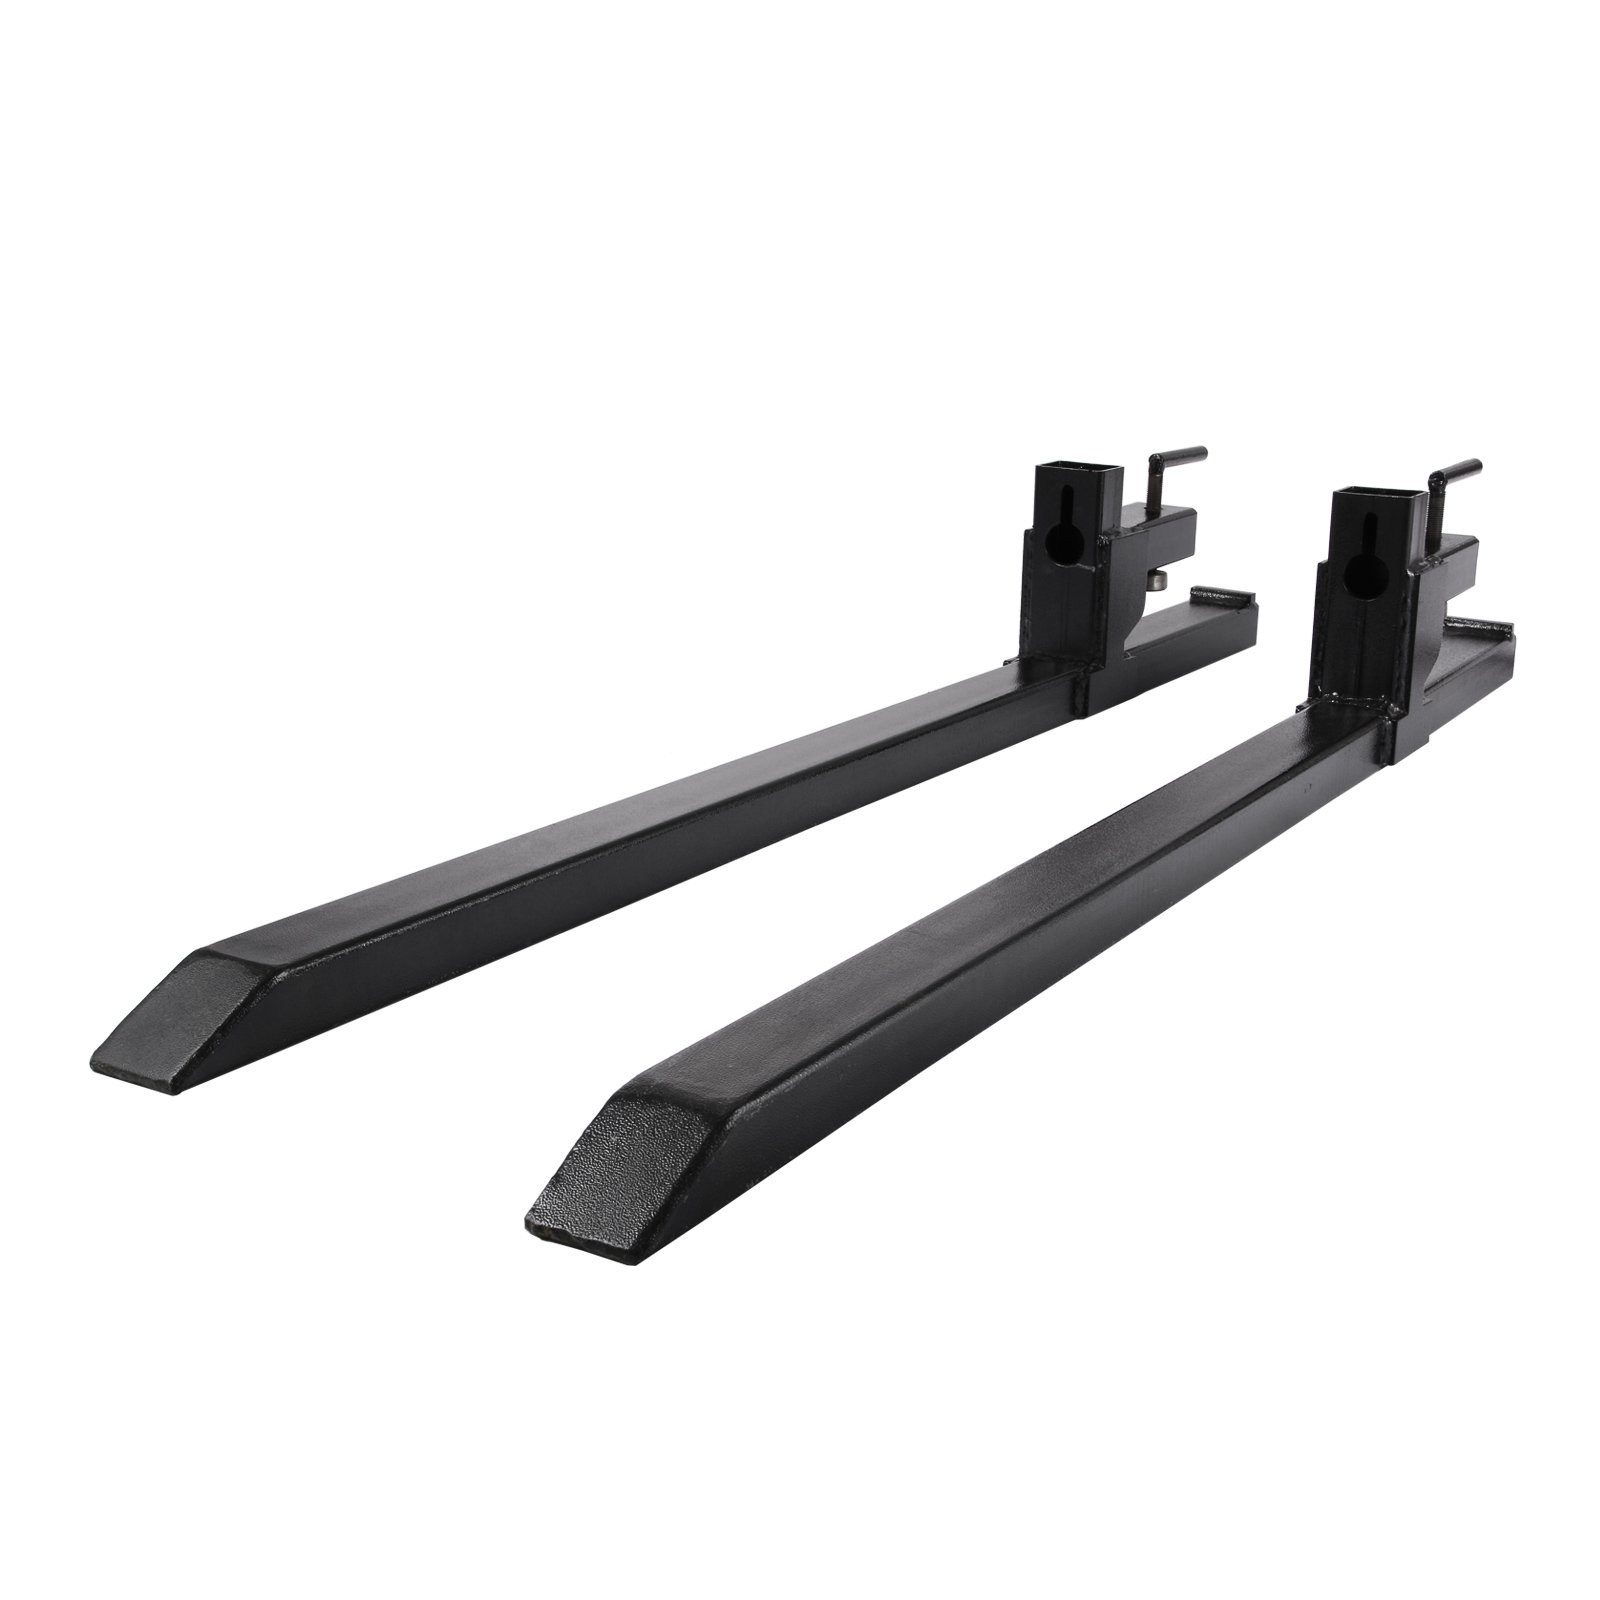 Mophorn Clamp on Pallet Forks 2000lbs Pallet Fork 43'' Pallet Forks for Tractor Bucket Loader Skid Steer (2000lbs)